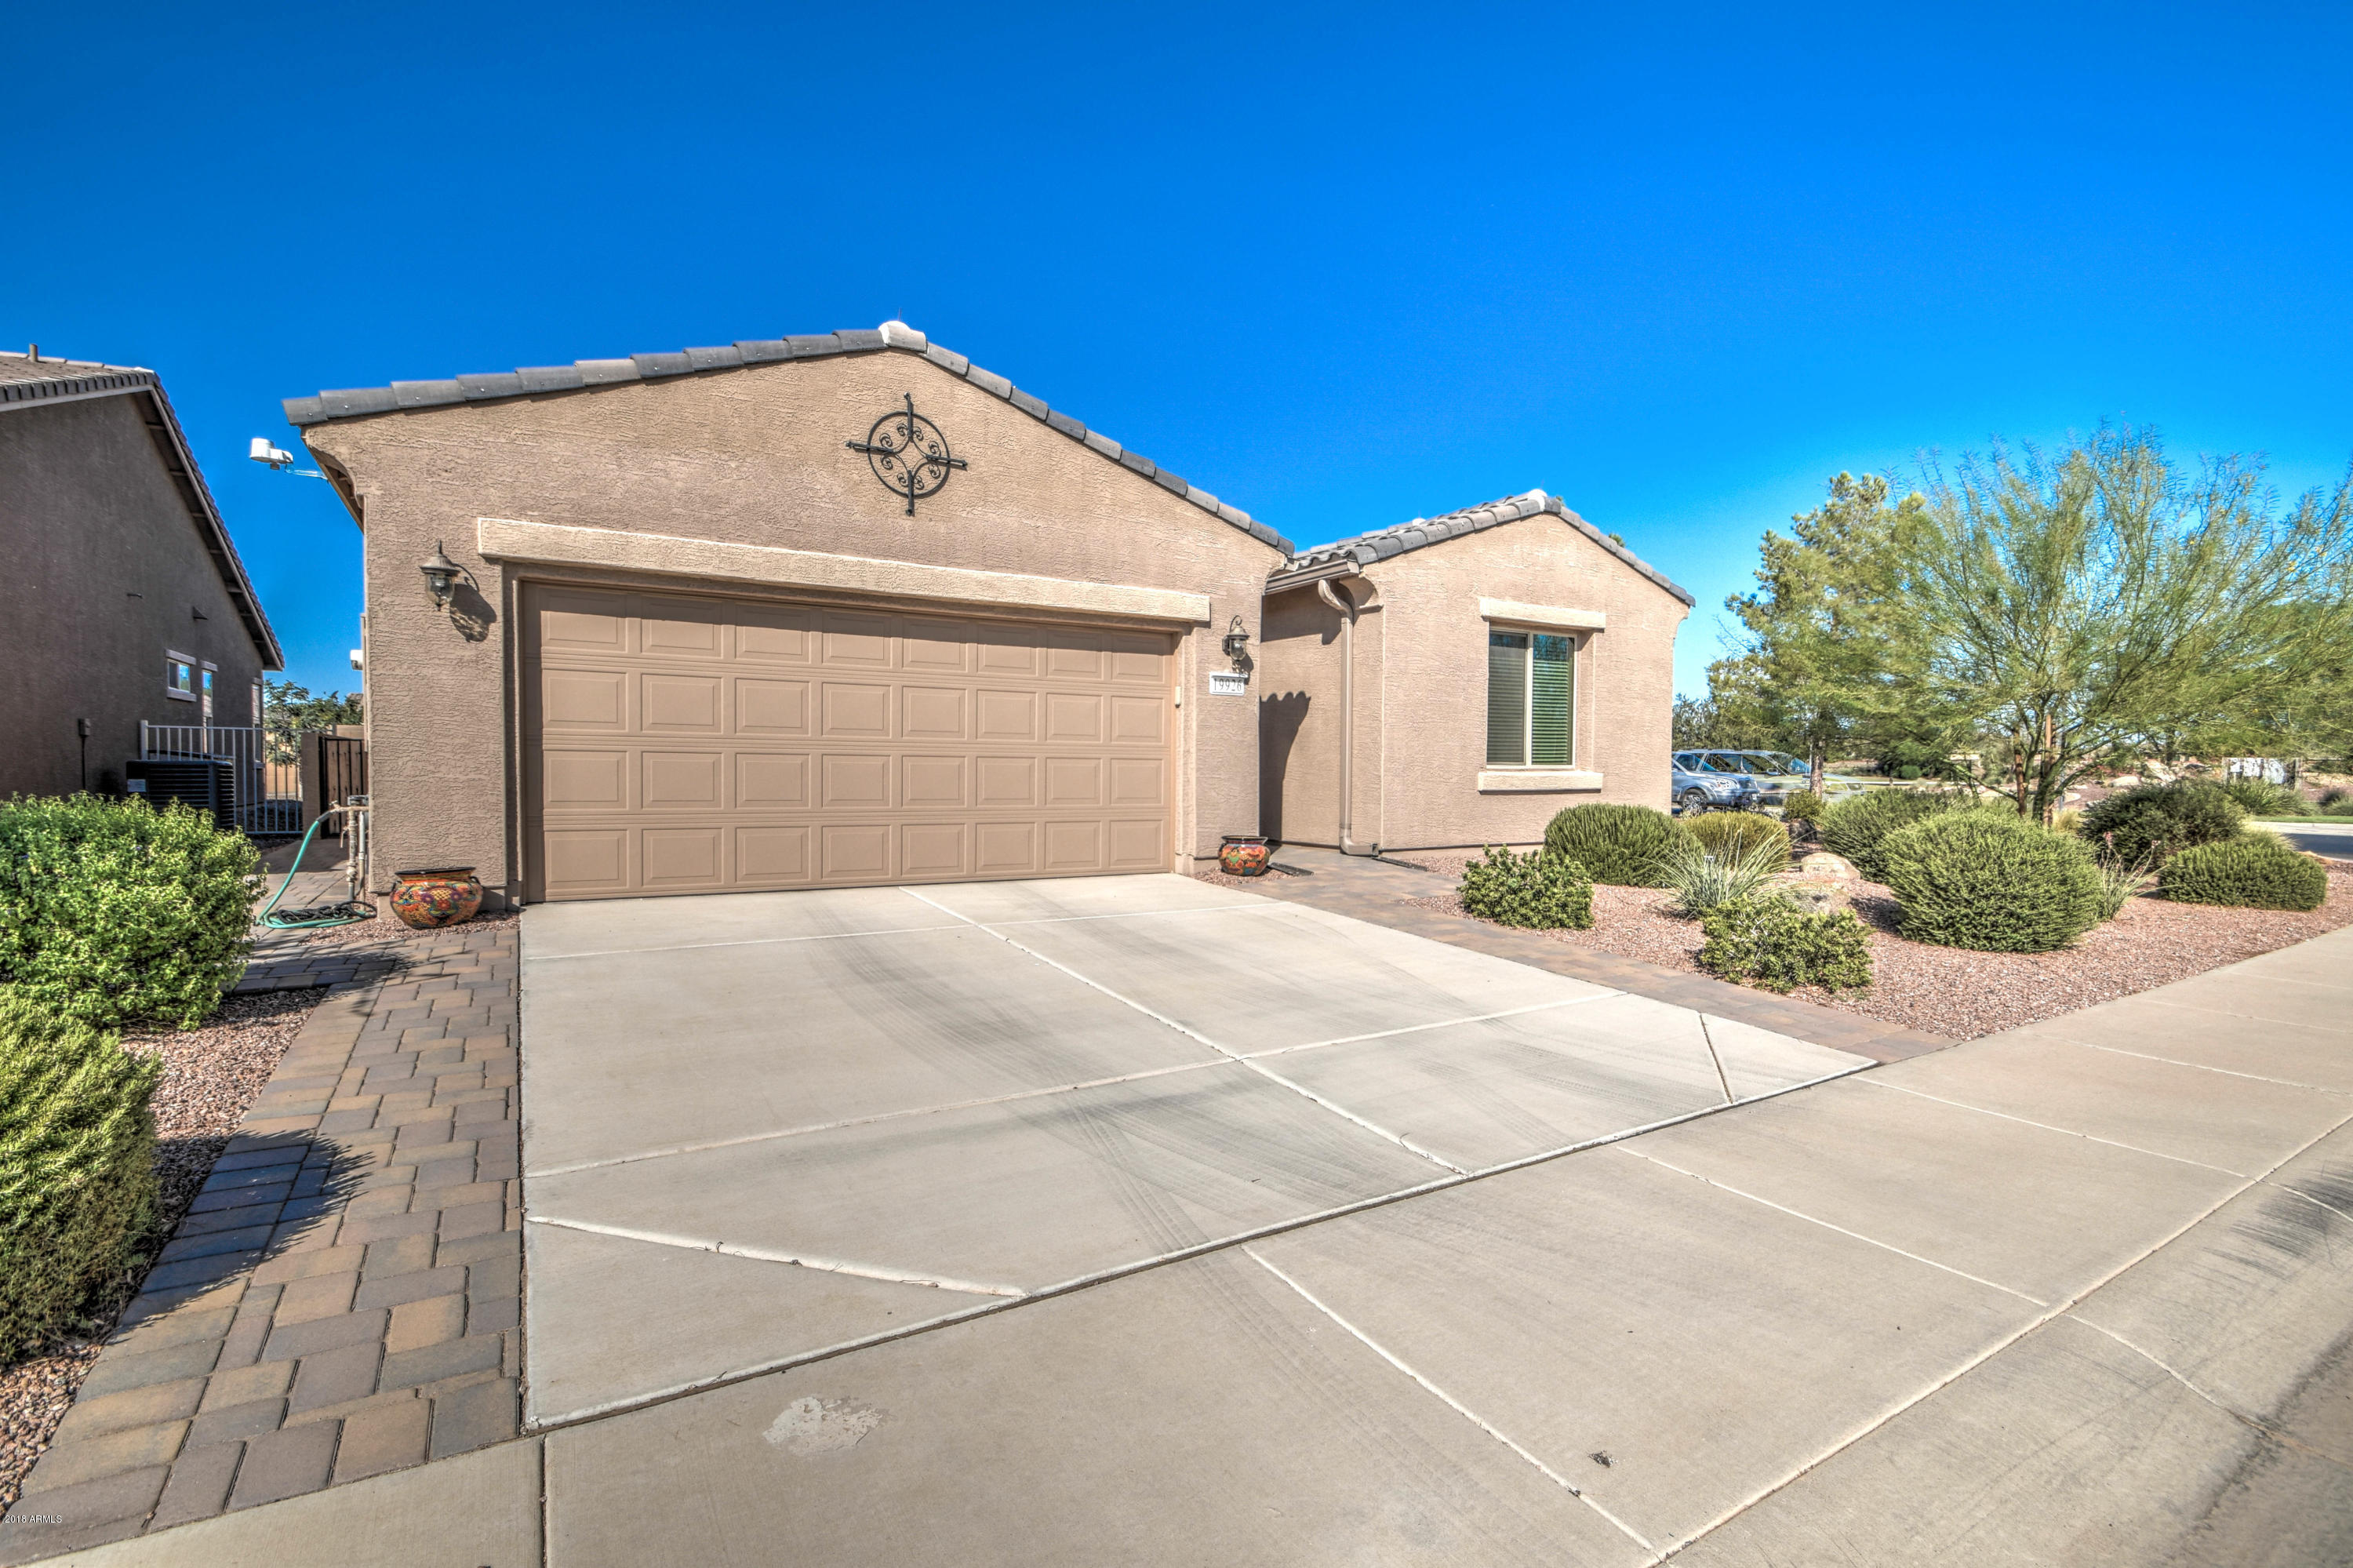 Photo for 19926 N Pinochle Lane, Maricopa, AZ 85138 (MLS # 5818896)